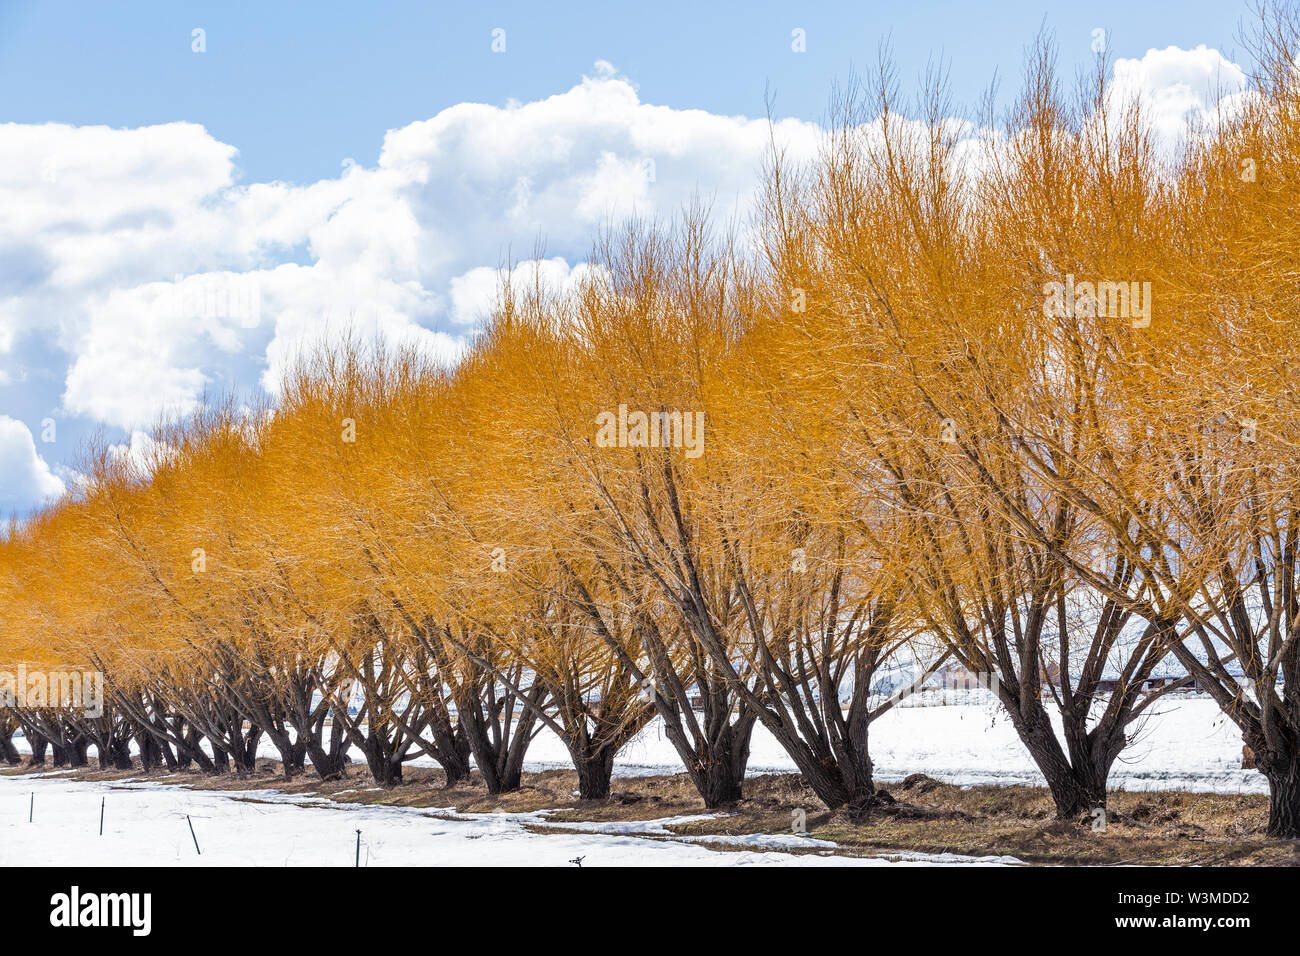 Autumn trees in snow in Bellevue, Idaho, USA - Stock Image